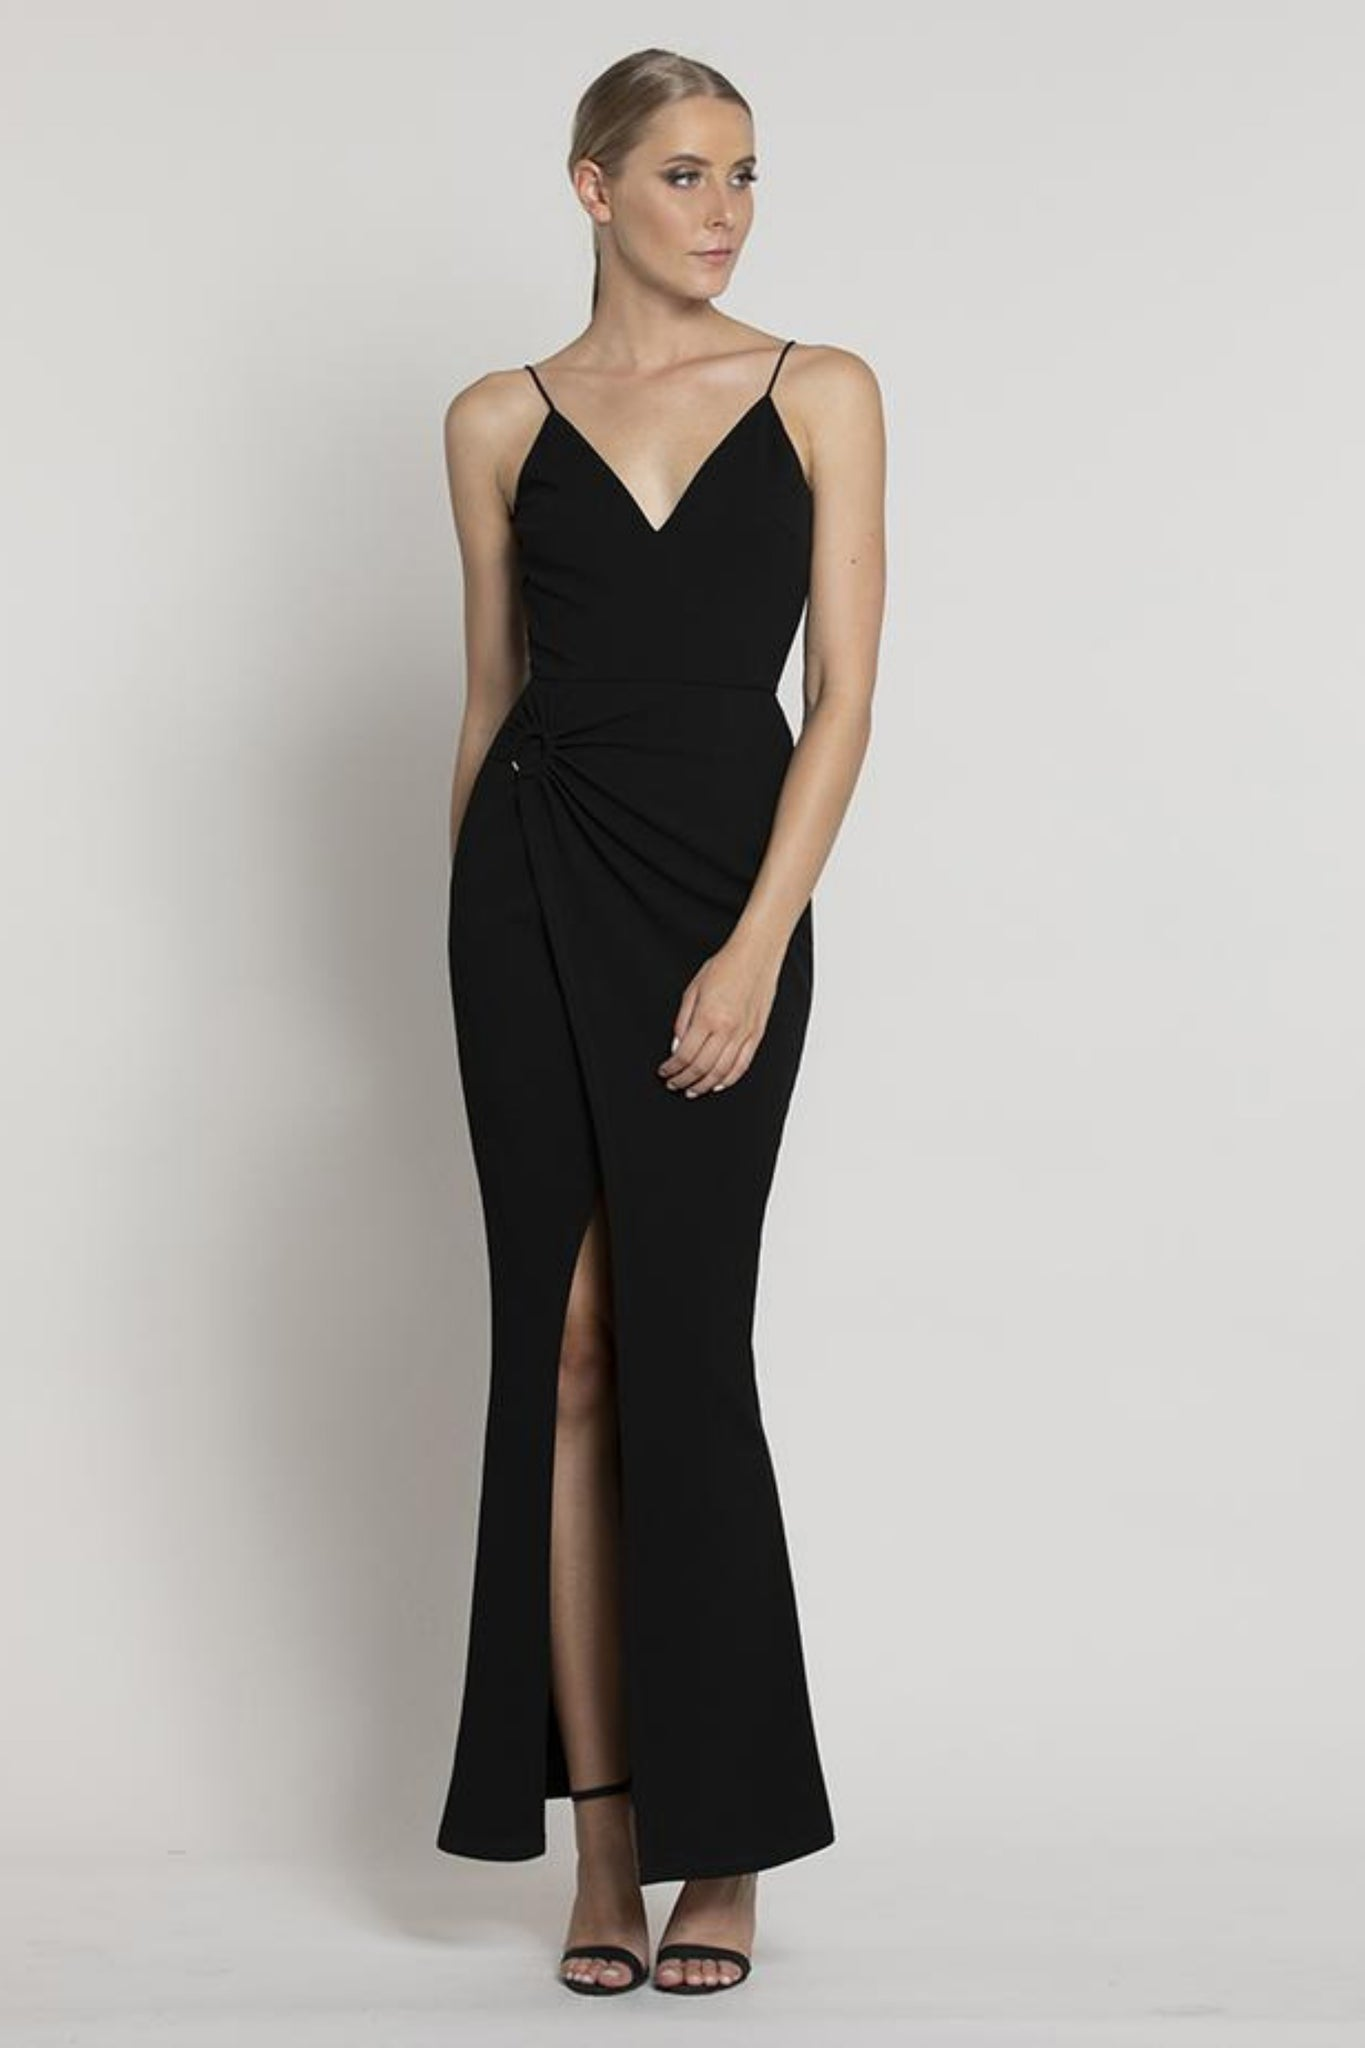 Buy Lumier Batida Split Maxi in Black now at Smoke and Mirrors Boutique. Buy Lumier Batida Split Maxi with ZipPay now. Buy Lumier Batida Split Maxi with AfterPay now. Buy Lumier with Free Shipping Australia wide on all orders over $100.